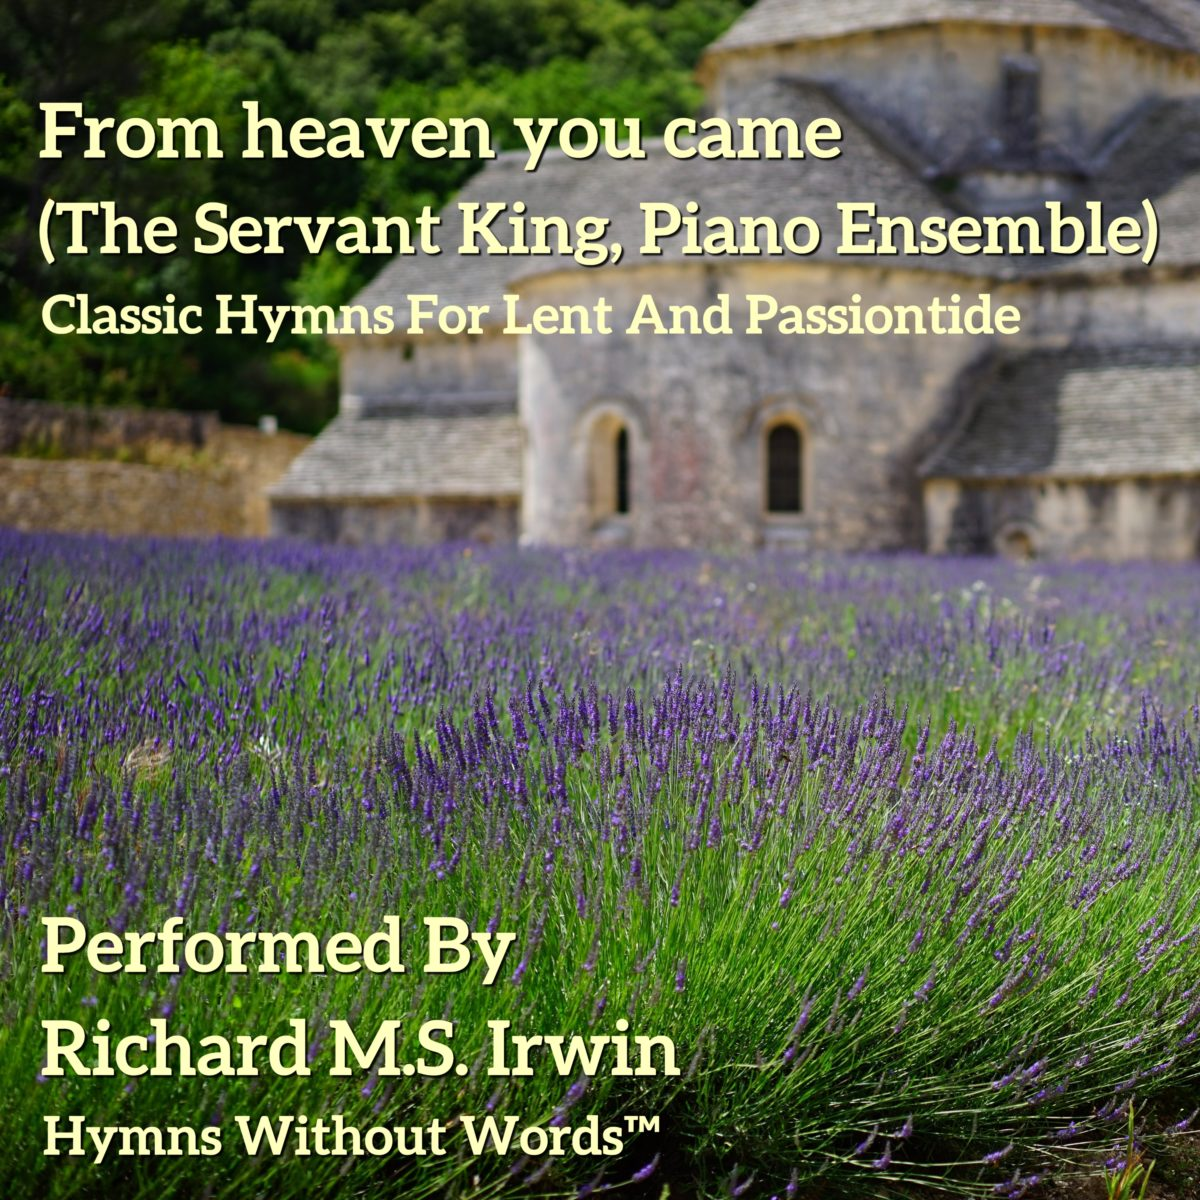 From Heaven You Came (The Servant King, Piano Ensemble, 4 Verses)